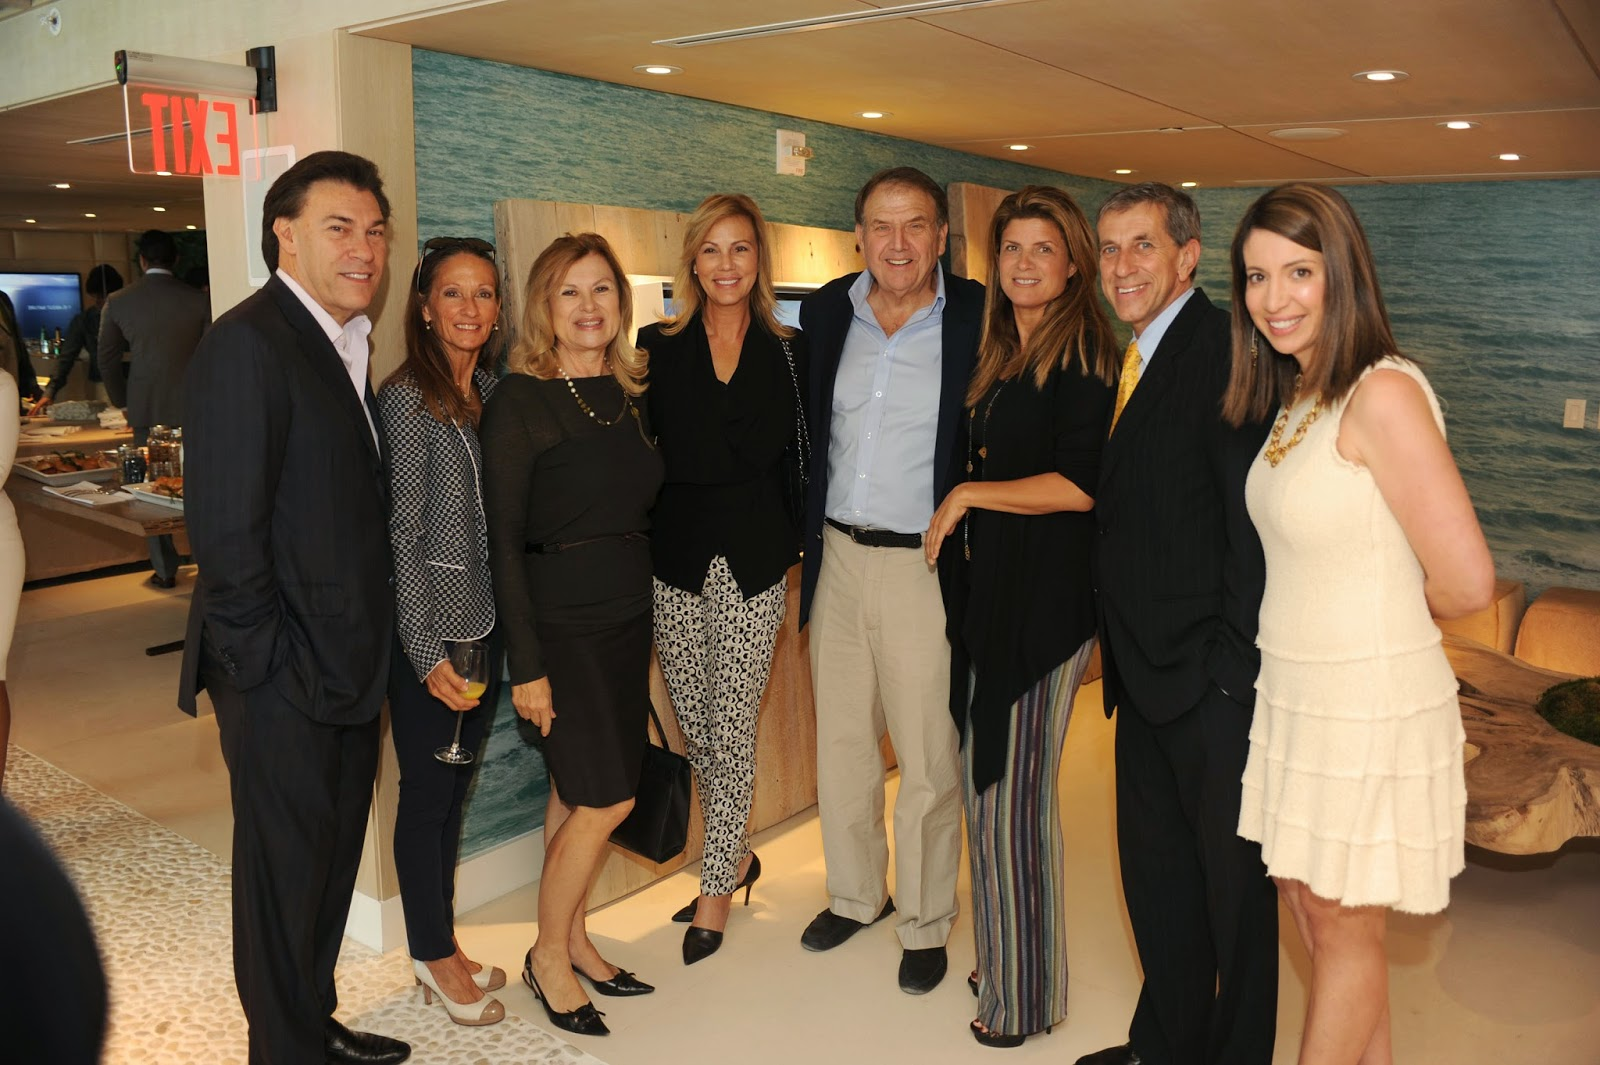 Richard LeFrak & Edgardo Defortuna celebrate sales success at '1 Hotel & Homes South Beach'